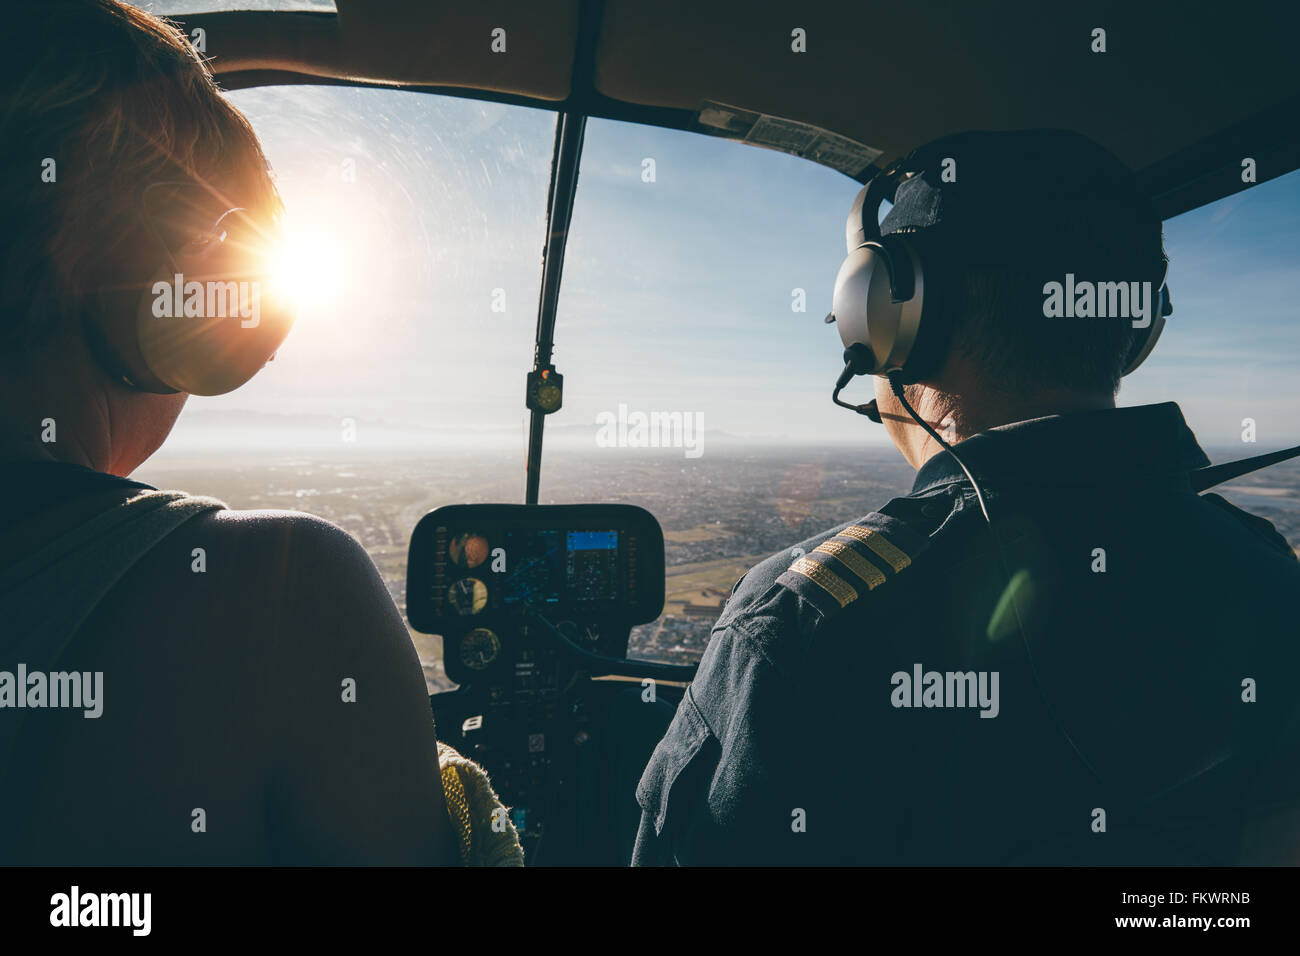 Two pilots in a helicopter while flying on a sunny day. rear view shot of man and woman pilots - Stock Image